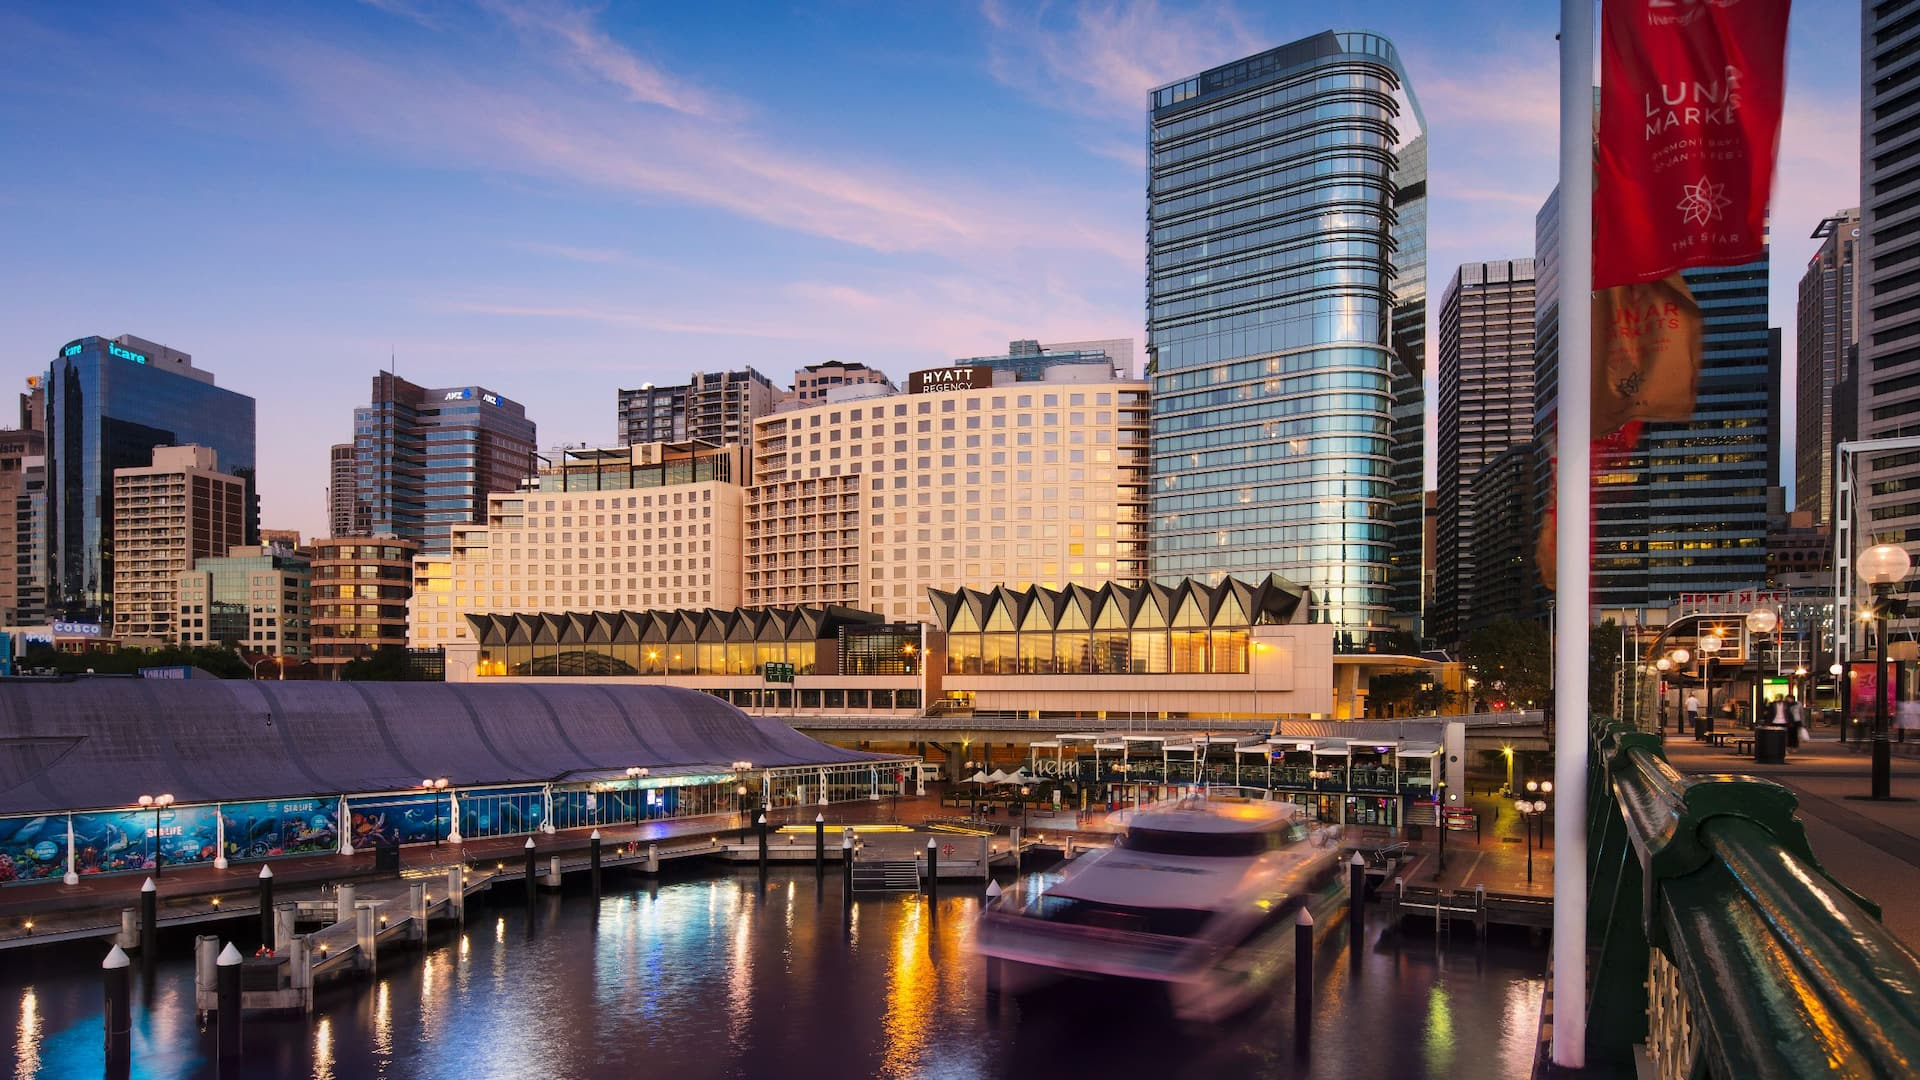 Star City Darling Harbour